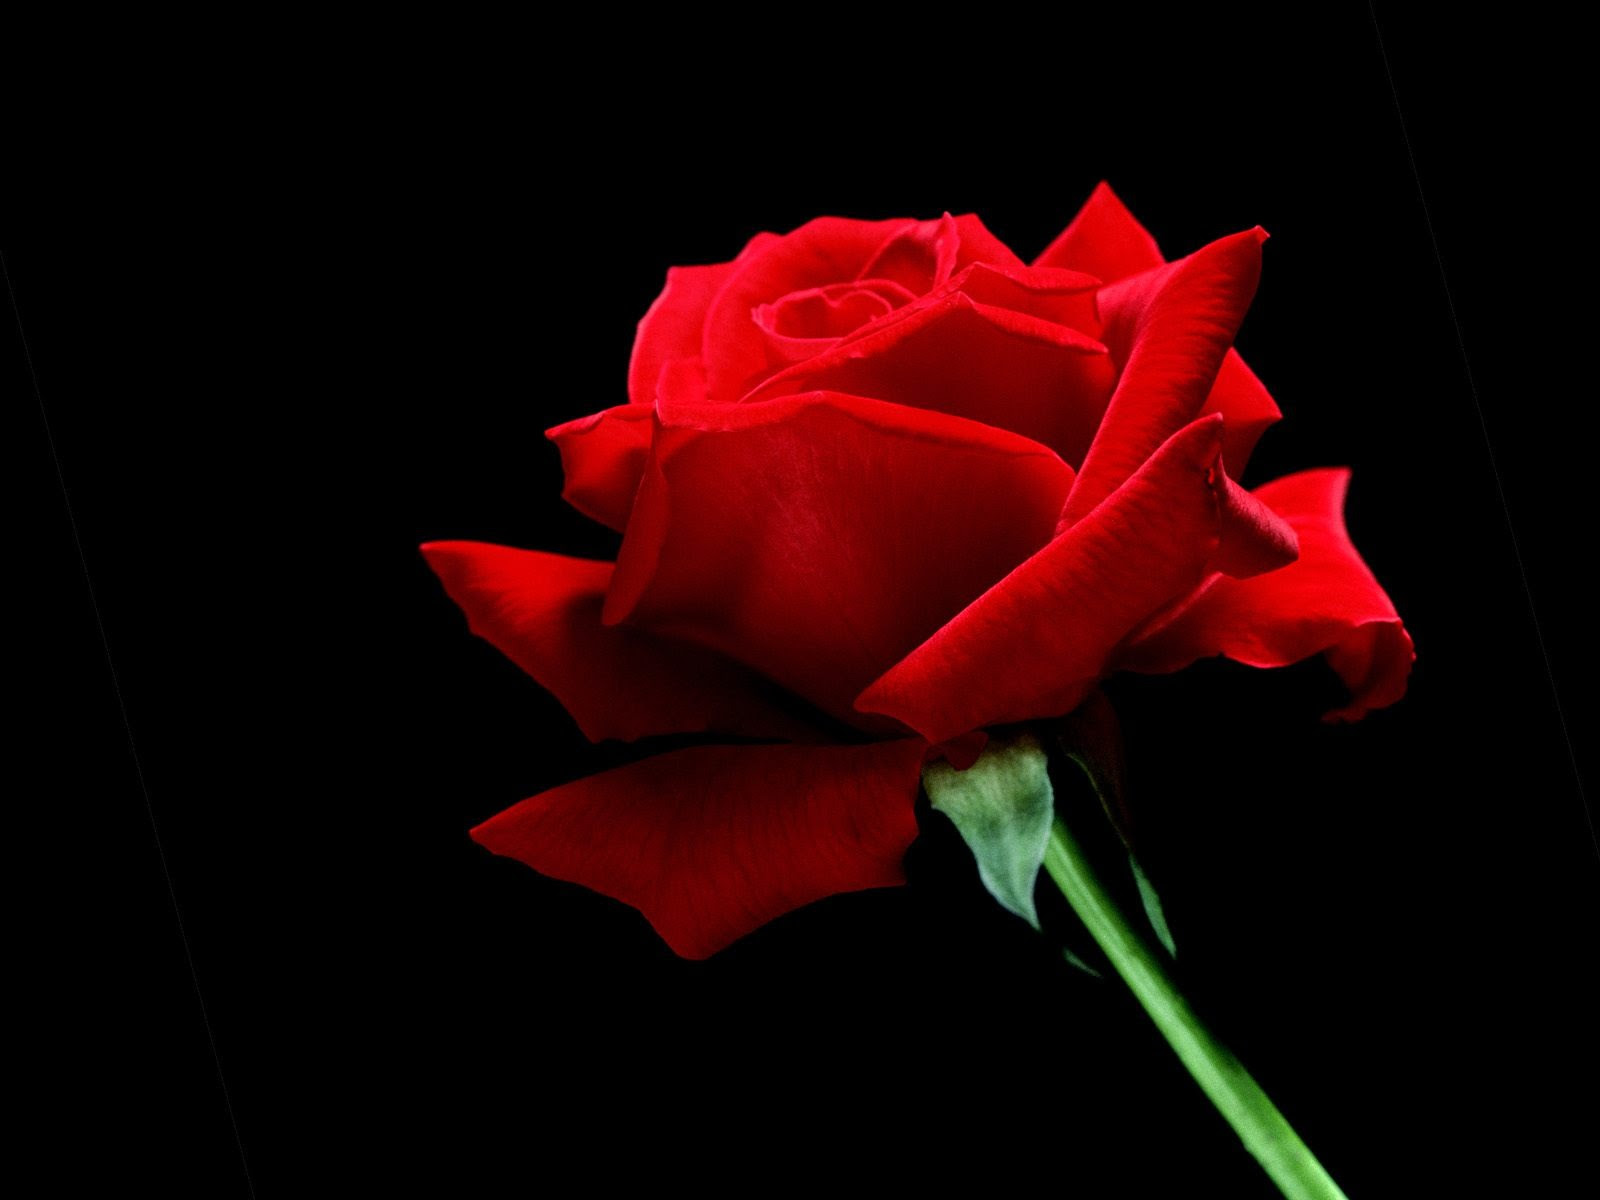 A Single Red Rose Wallpaper Flowers Nature Wallpapers In Jpg Format